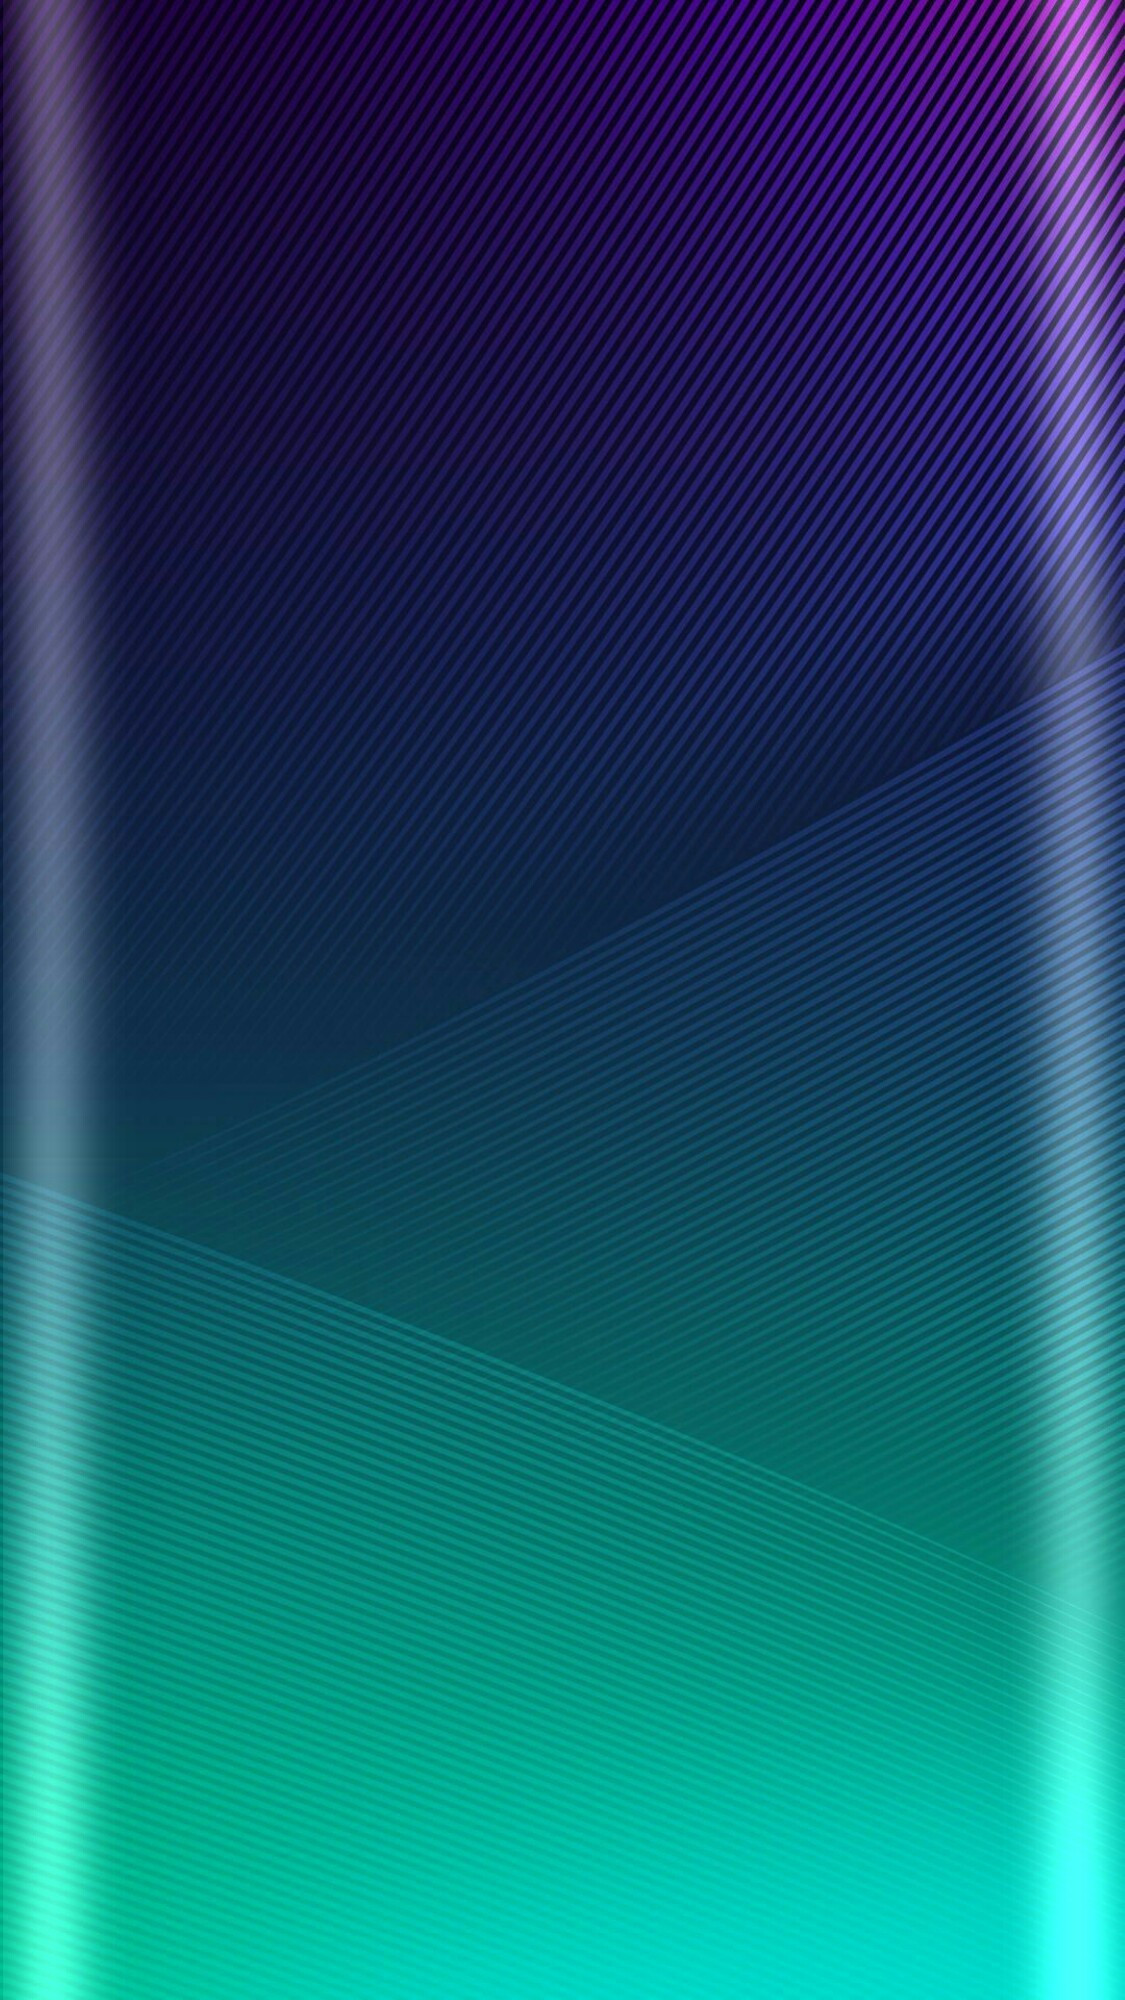 Cell Phone Wallpapers Hd 86 Images